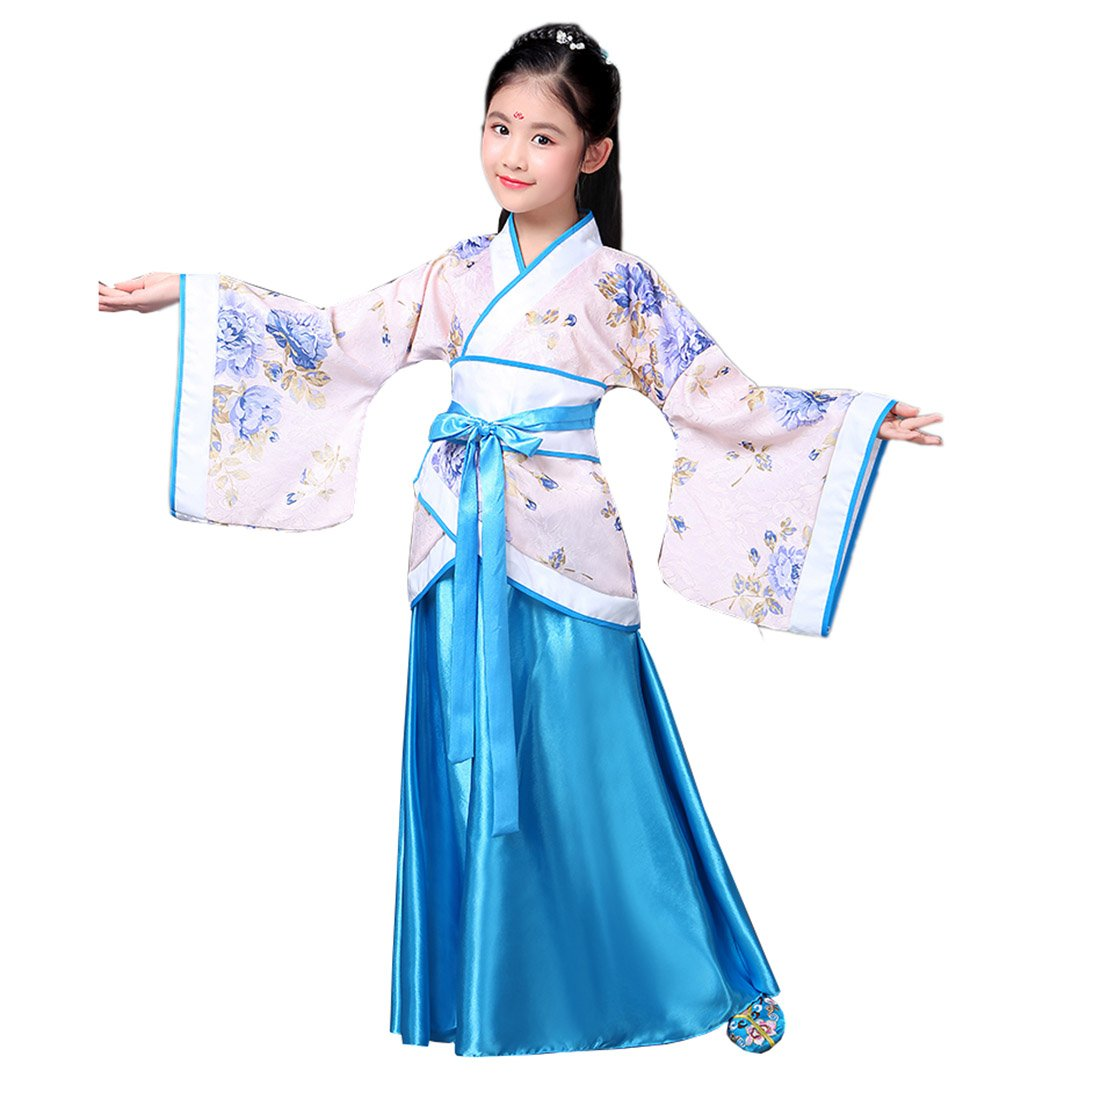 Ez-sofei Girls  Ancient Chinese Traditional Hanfu Dress Han Dynasty Costume   1541573433-16486  -  14.67 38e83bc99